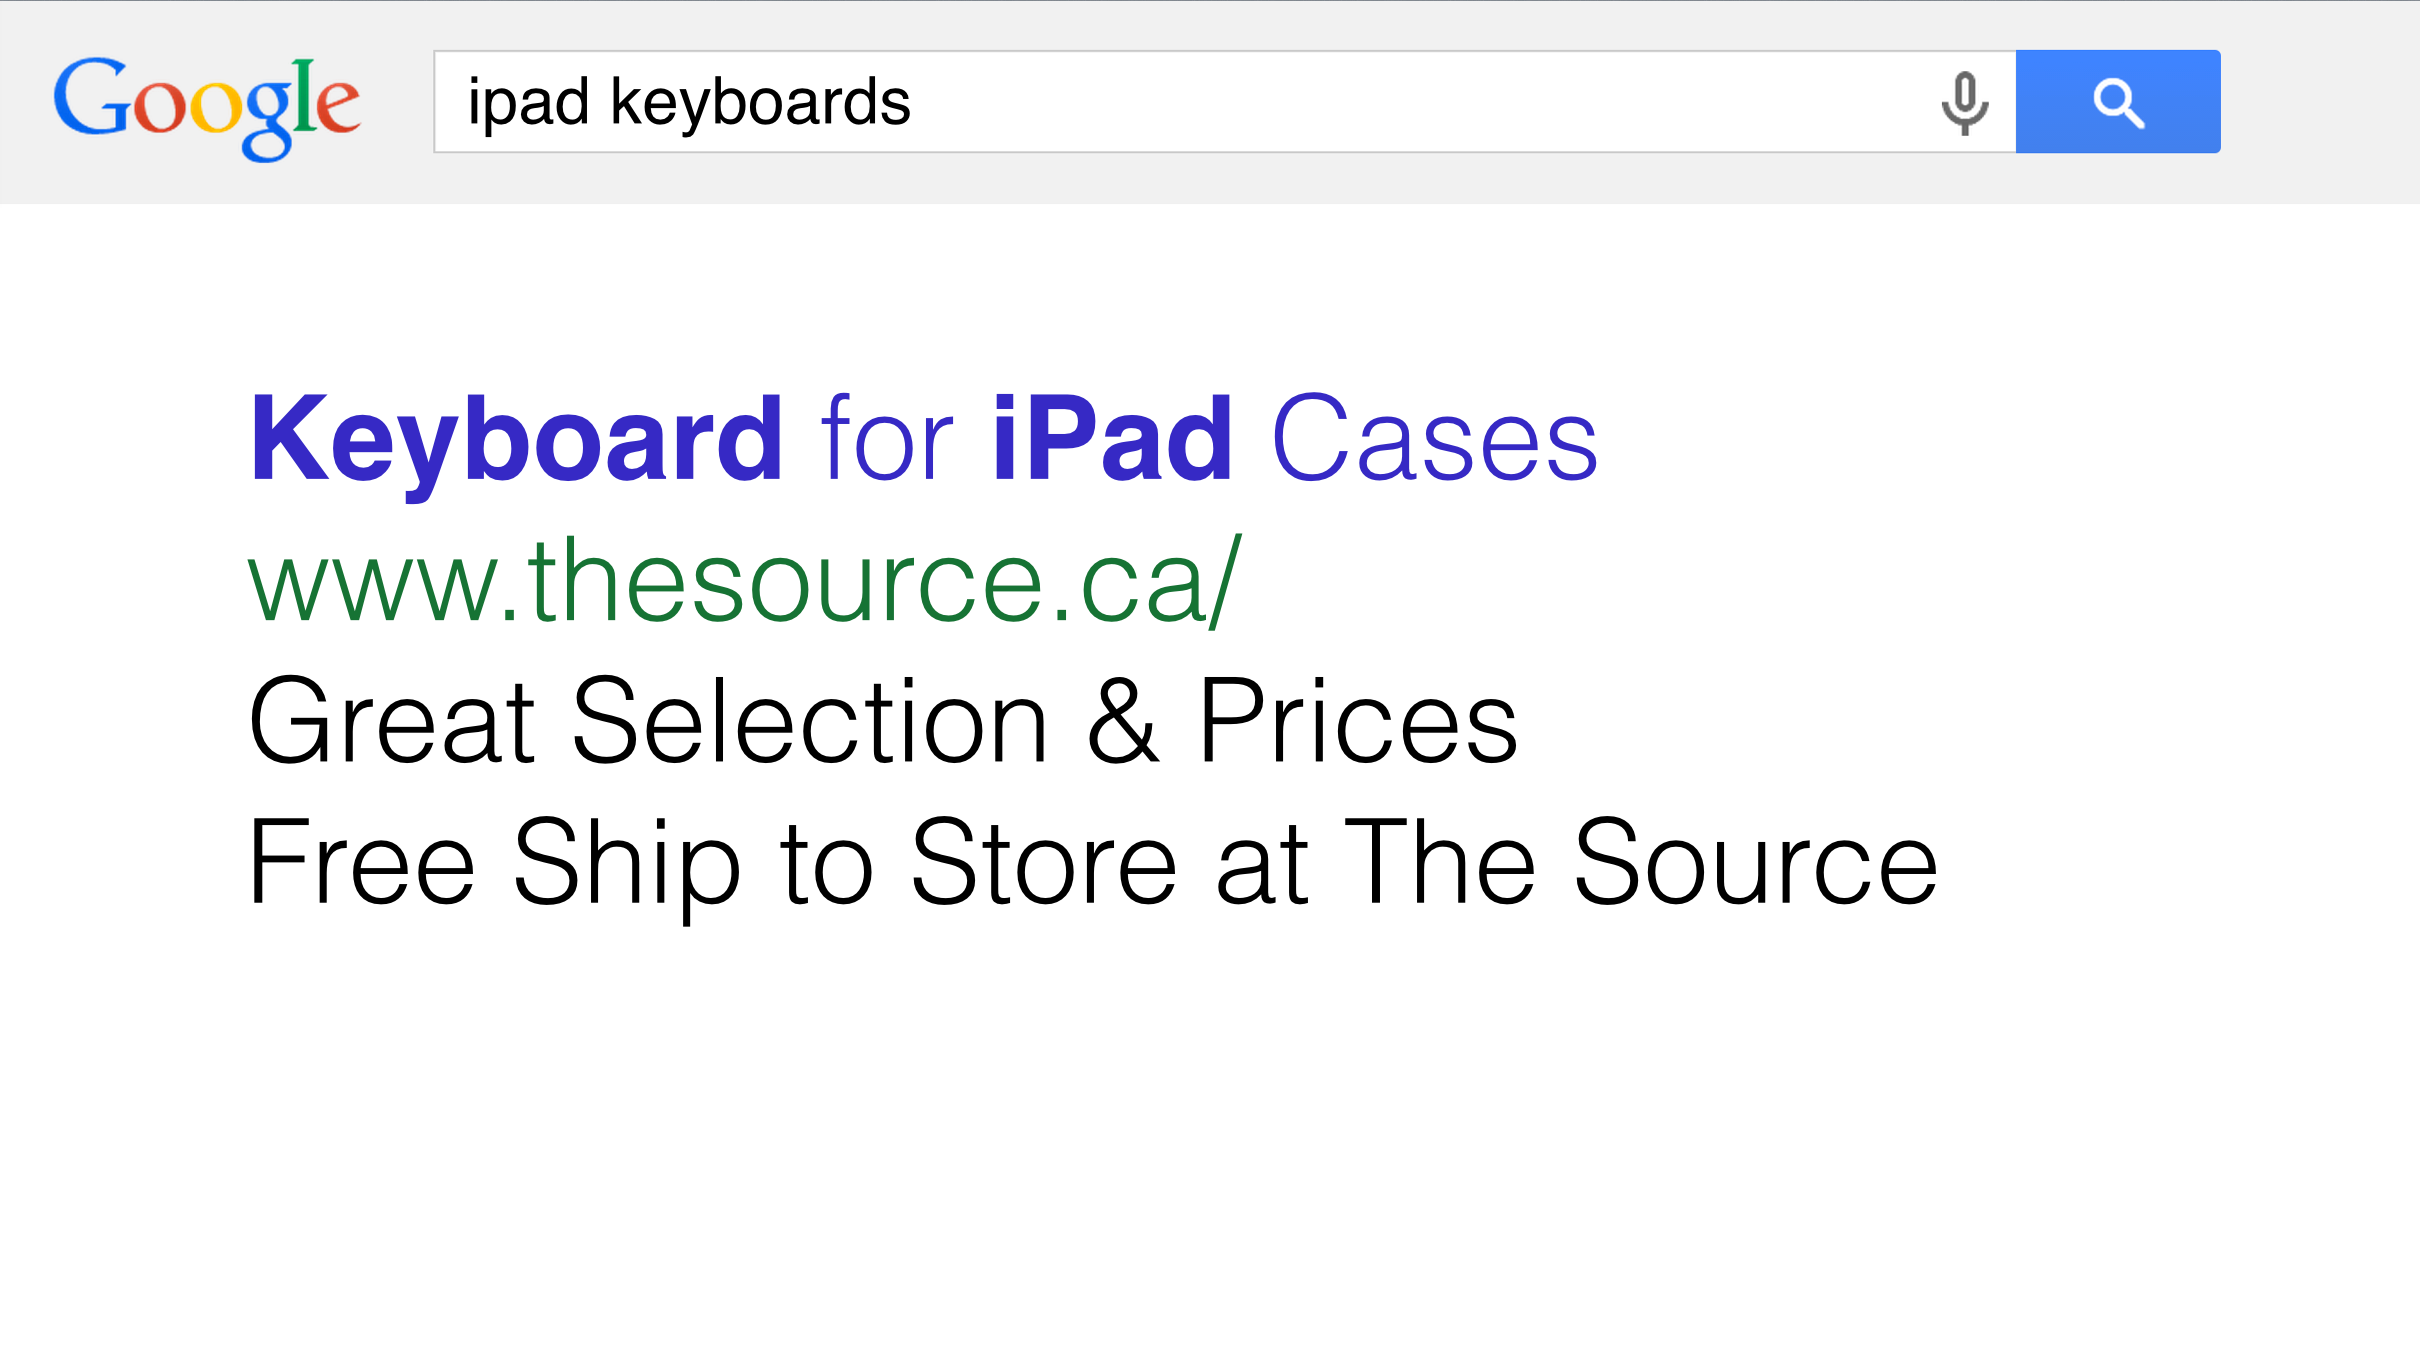 ipad-cases-search-and-ad.png